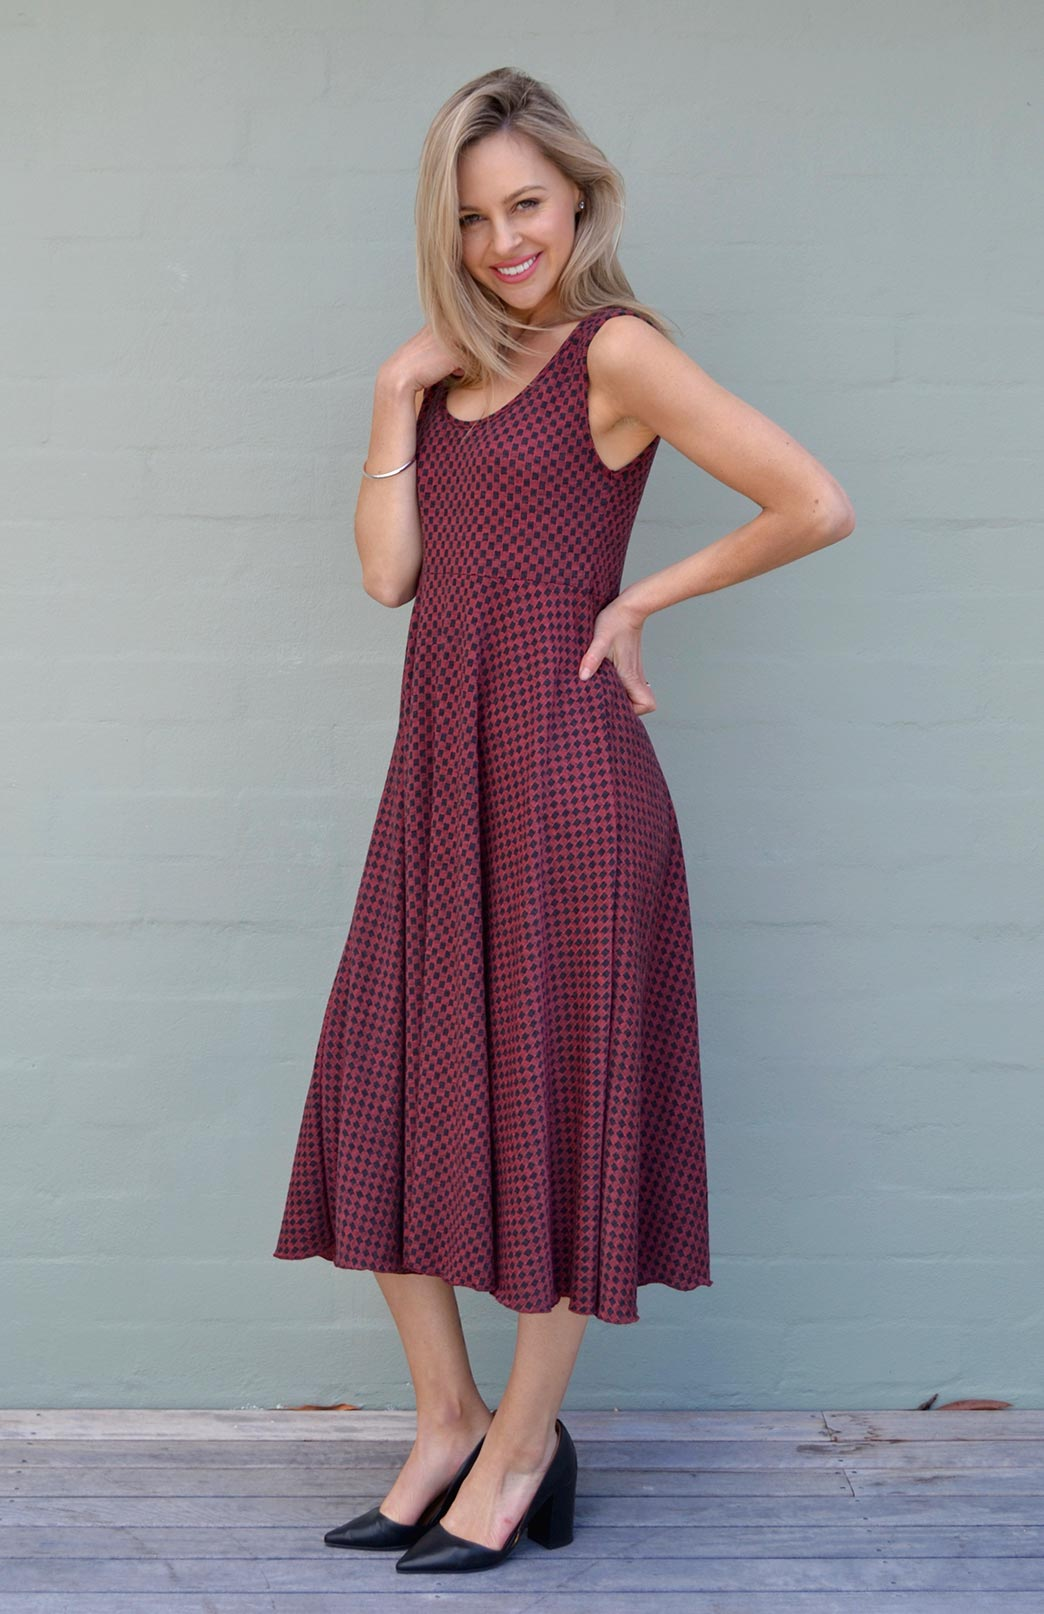 Fan Dress- Patterned Fabric - Women's Patterned Woollen Dress with empire waistline - Smitten Merino Tasmania Australia